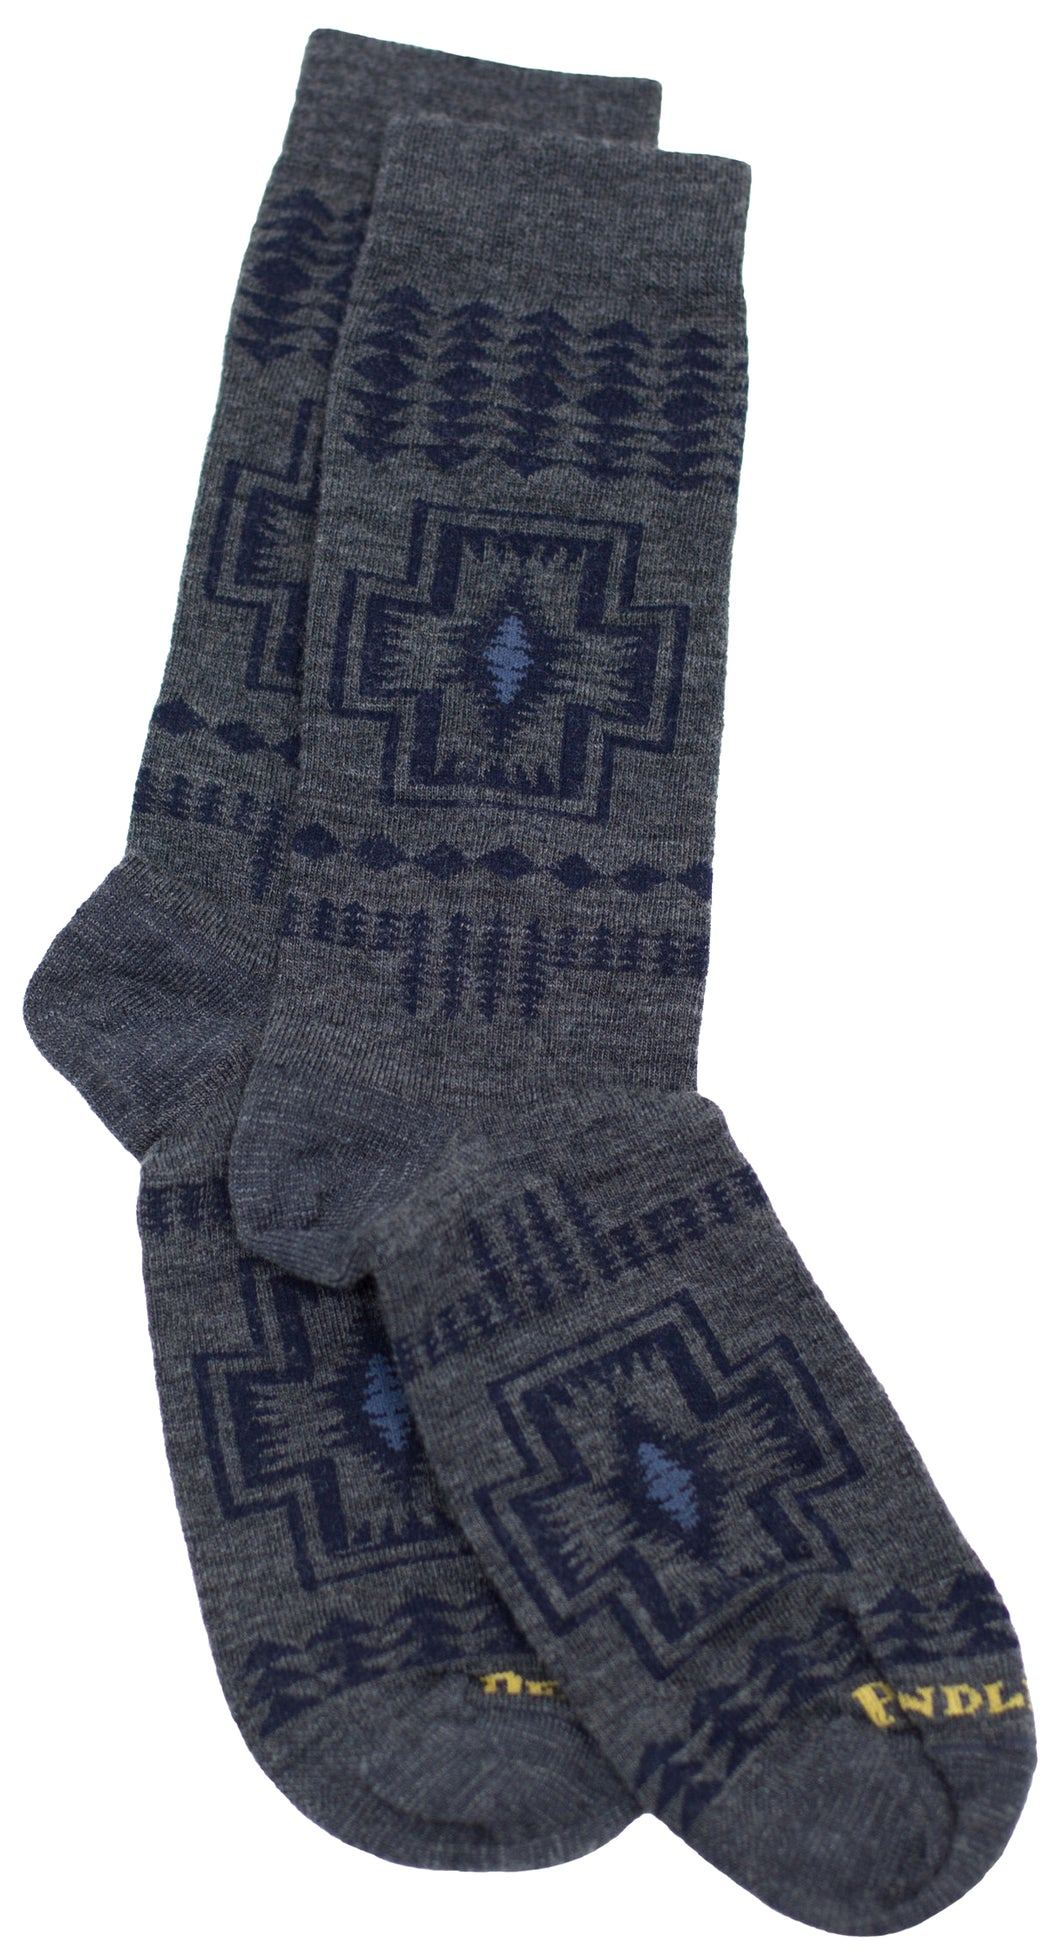 Harding Merino Wool Crew Sock - Grey